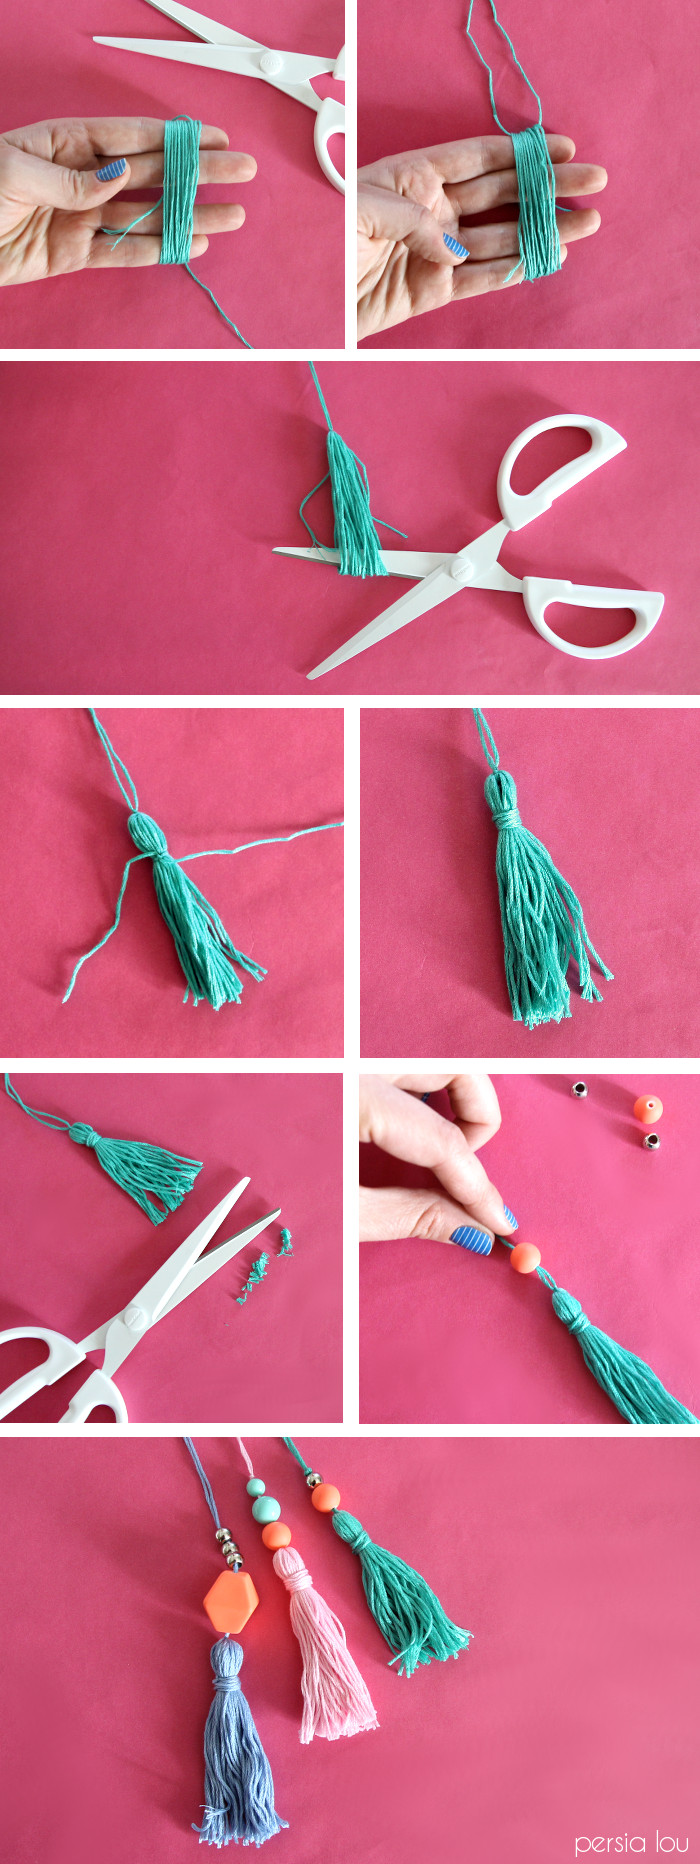 How to make beaded tassels – add to a bag!